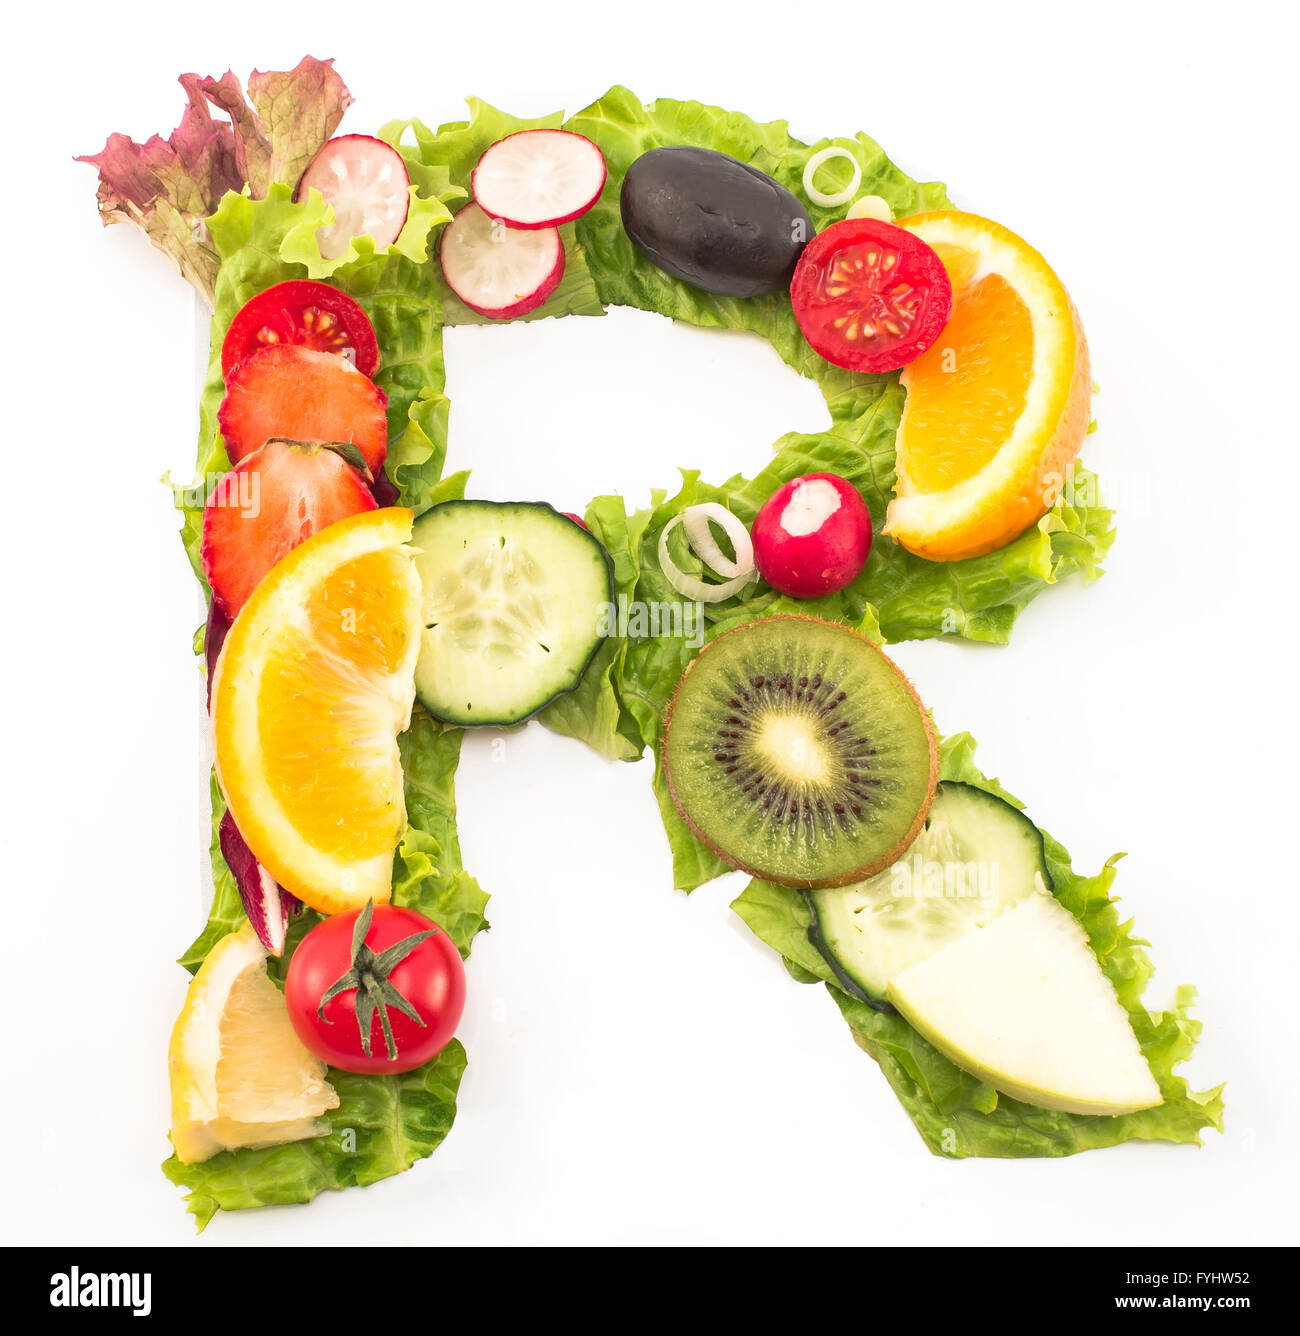 letter r made of salad and fruits stock photo 103040478 alamy